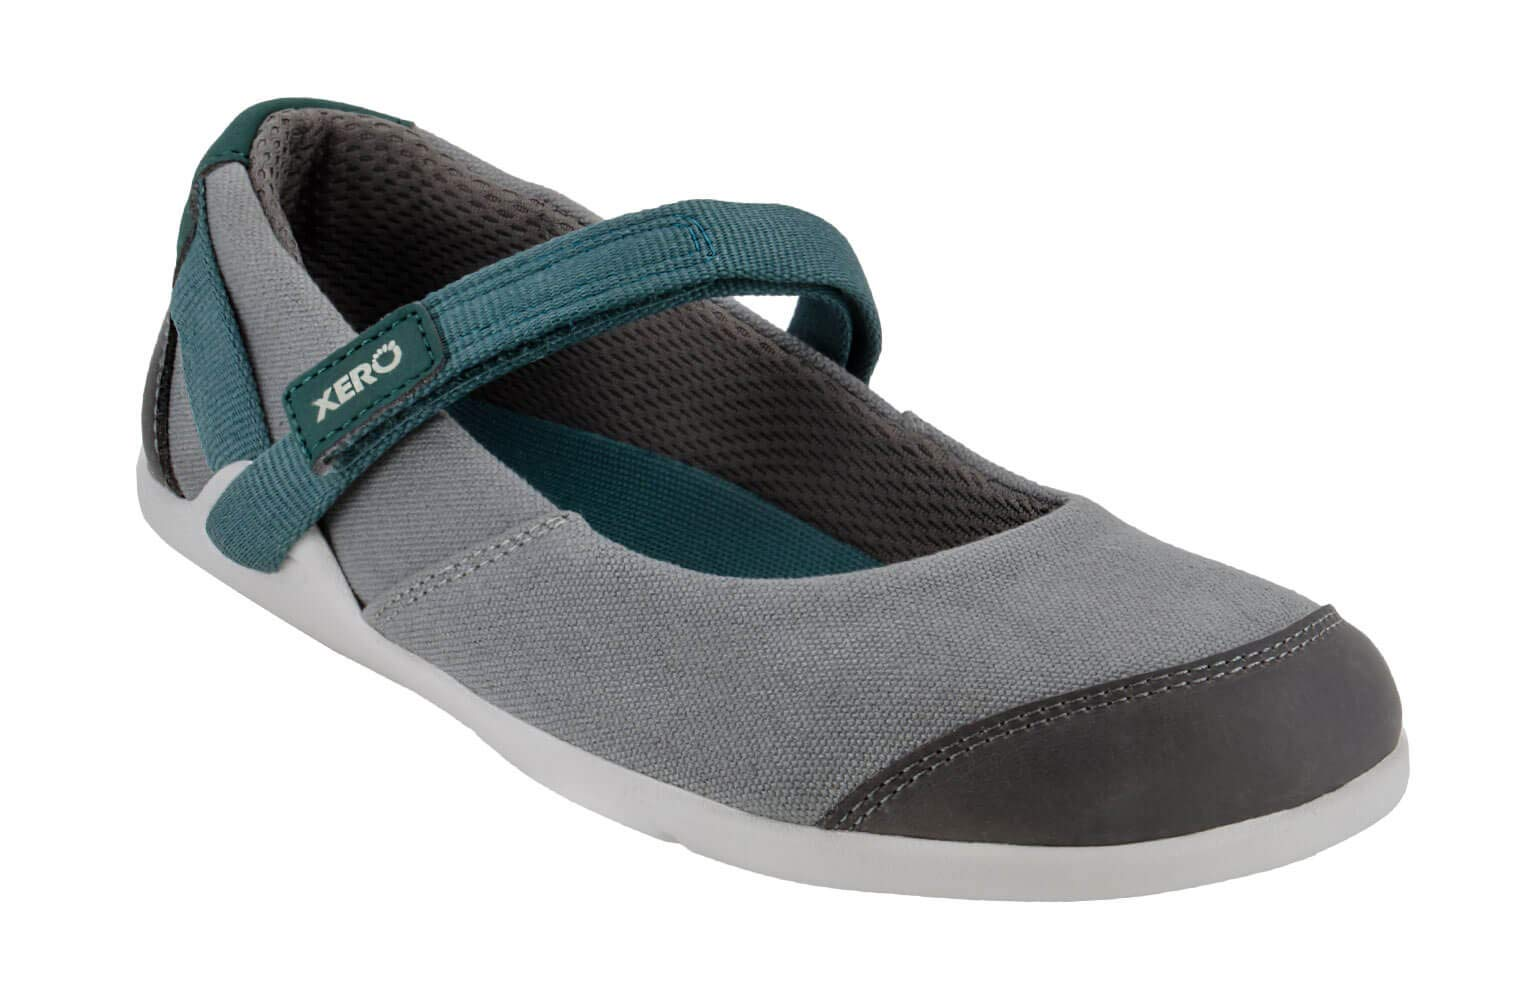 Xero Shoes Cassie Women S Mary Jane Style Casual Canvas Barefoot Inspired Minimalist Lightweight Zero Drop Shoe Buy Online In India At Desertcart